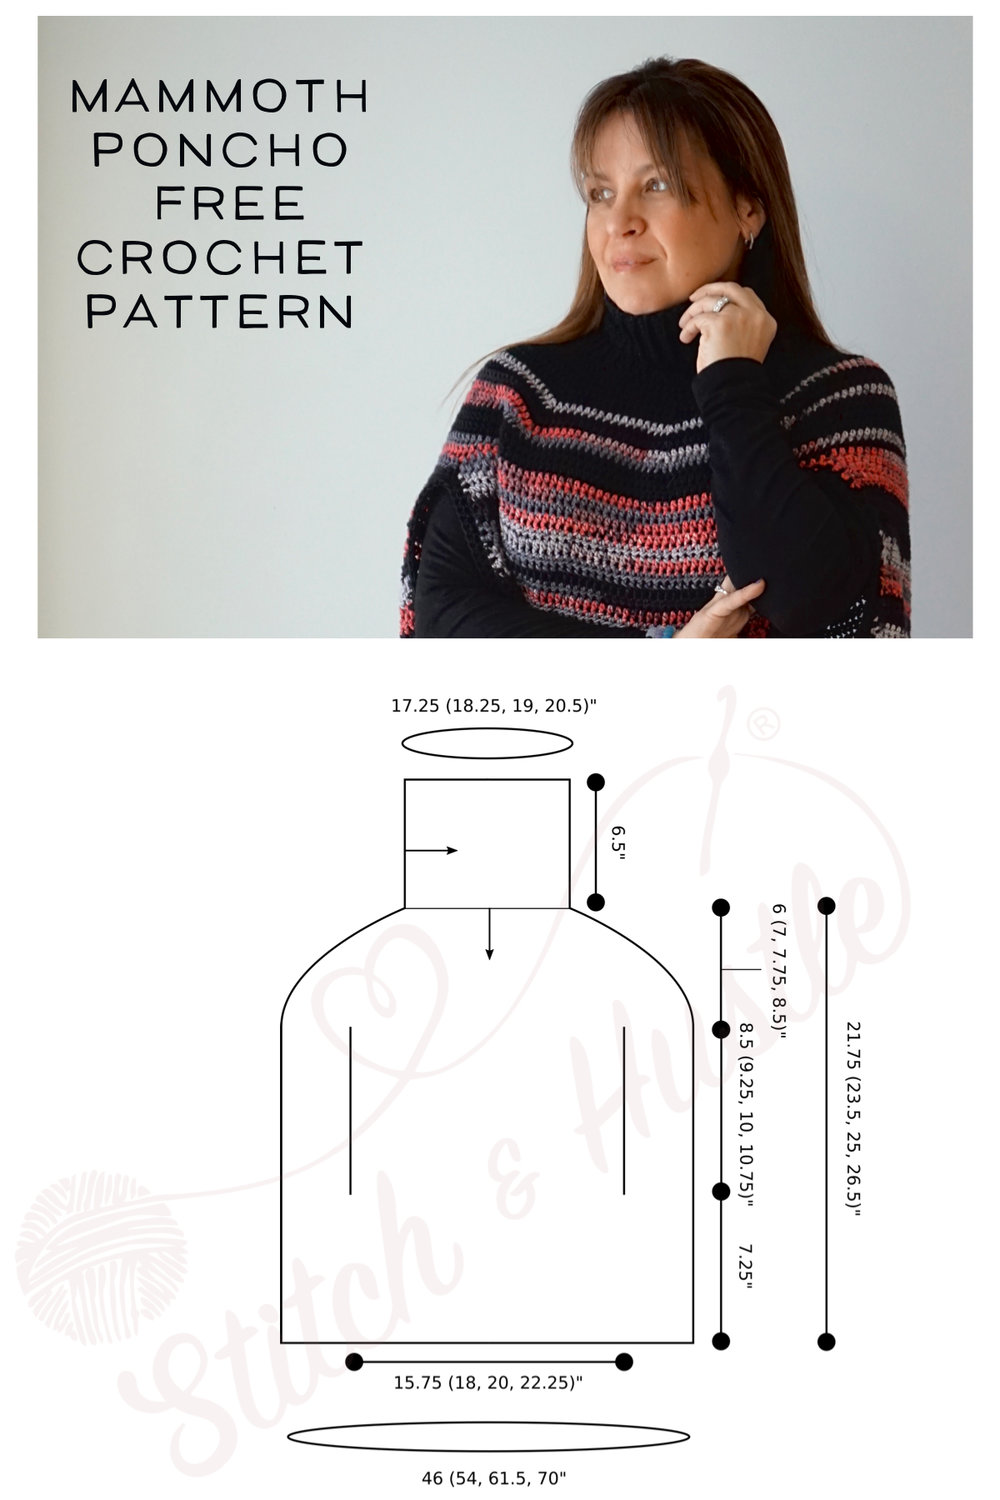 Mammoth_turtleneck_poncho_free_crochet_pattern_1.jpg